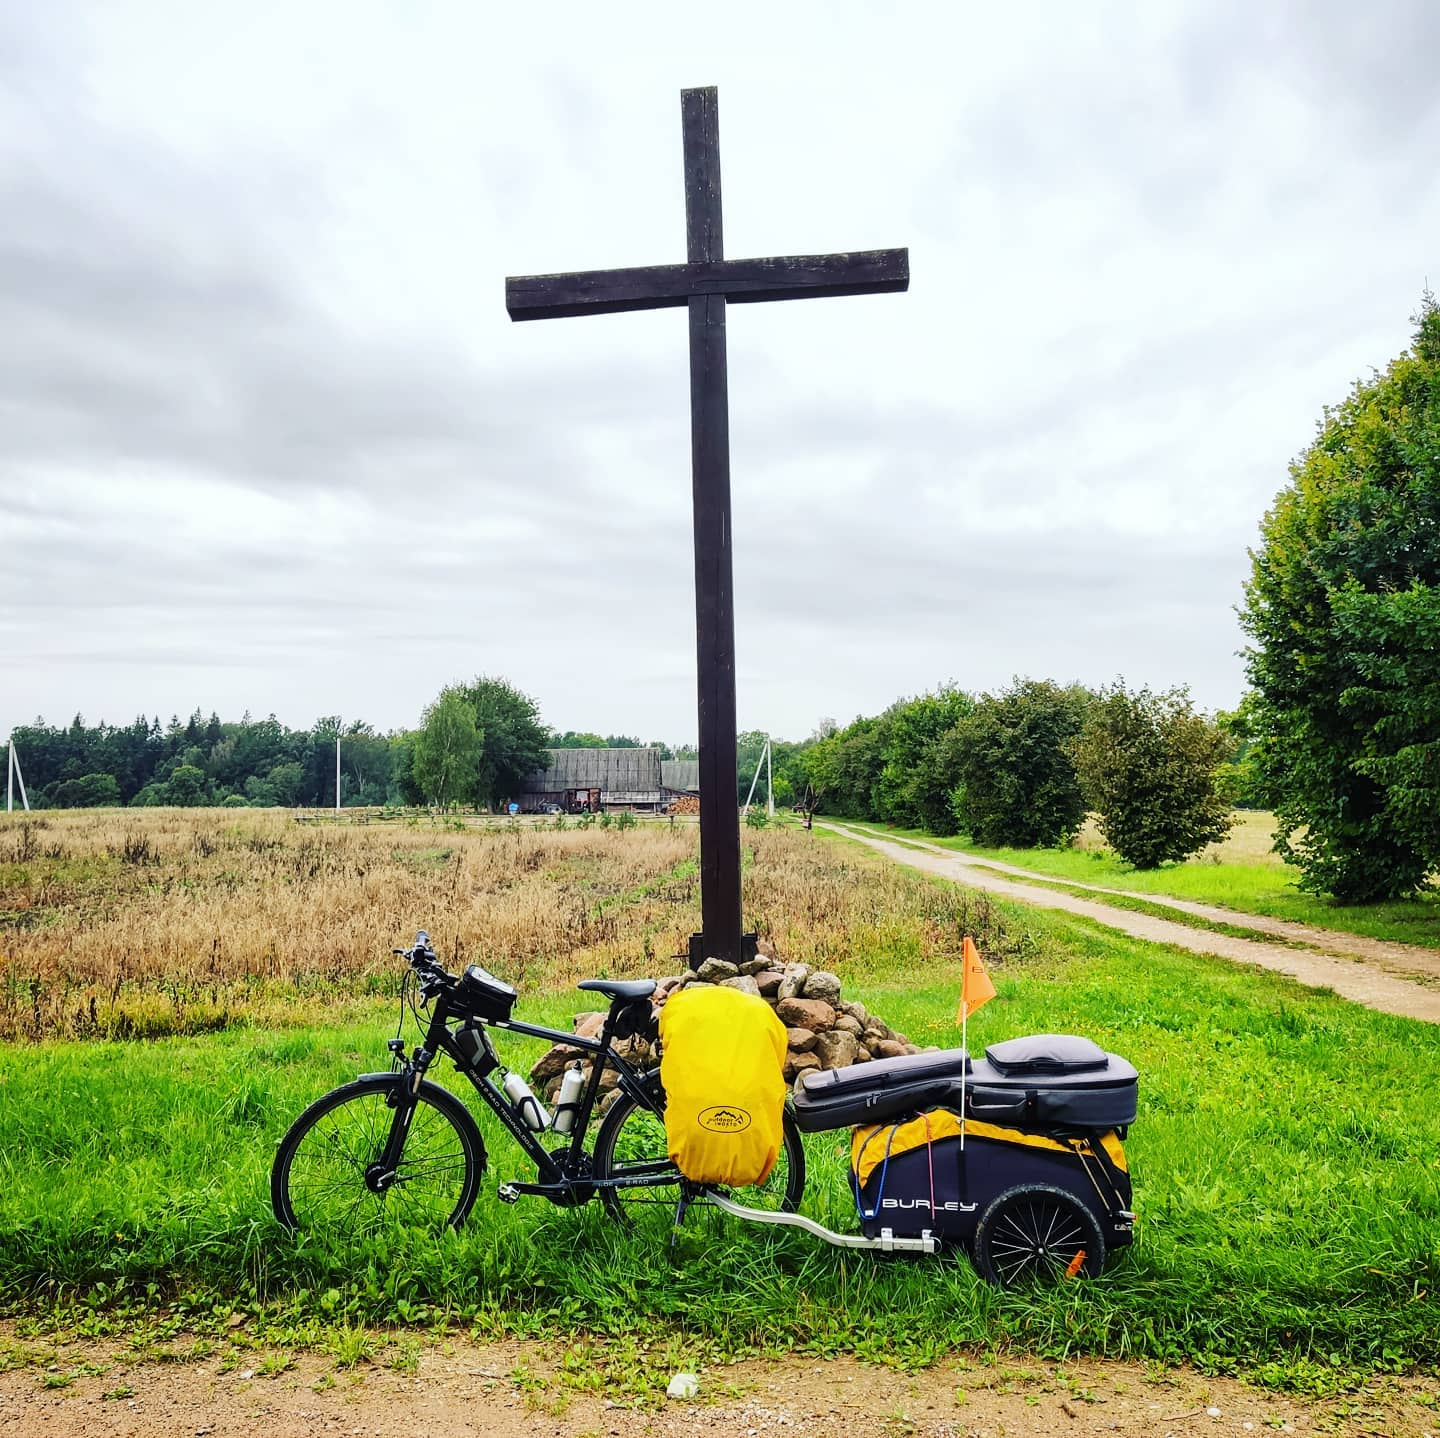 Ride 56 - day 77 - from Panevėžys to Kalimynai (Lithuania) - 28 August 20